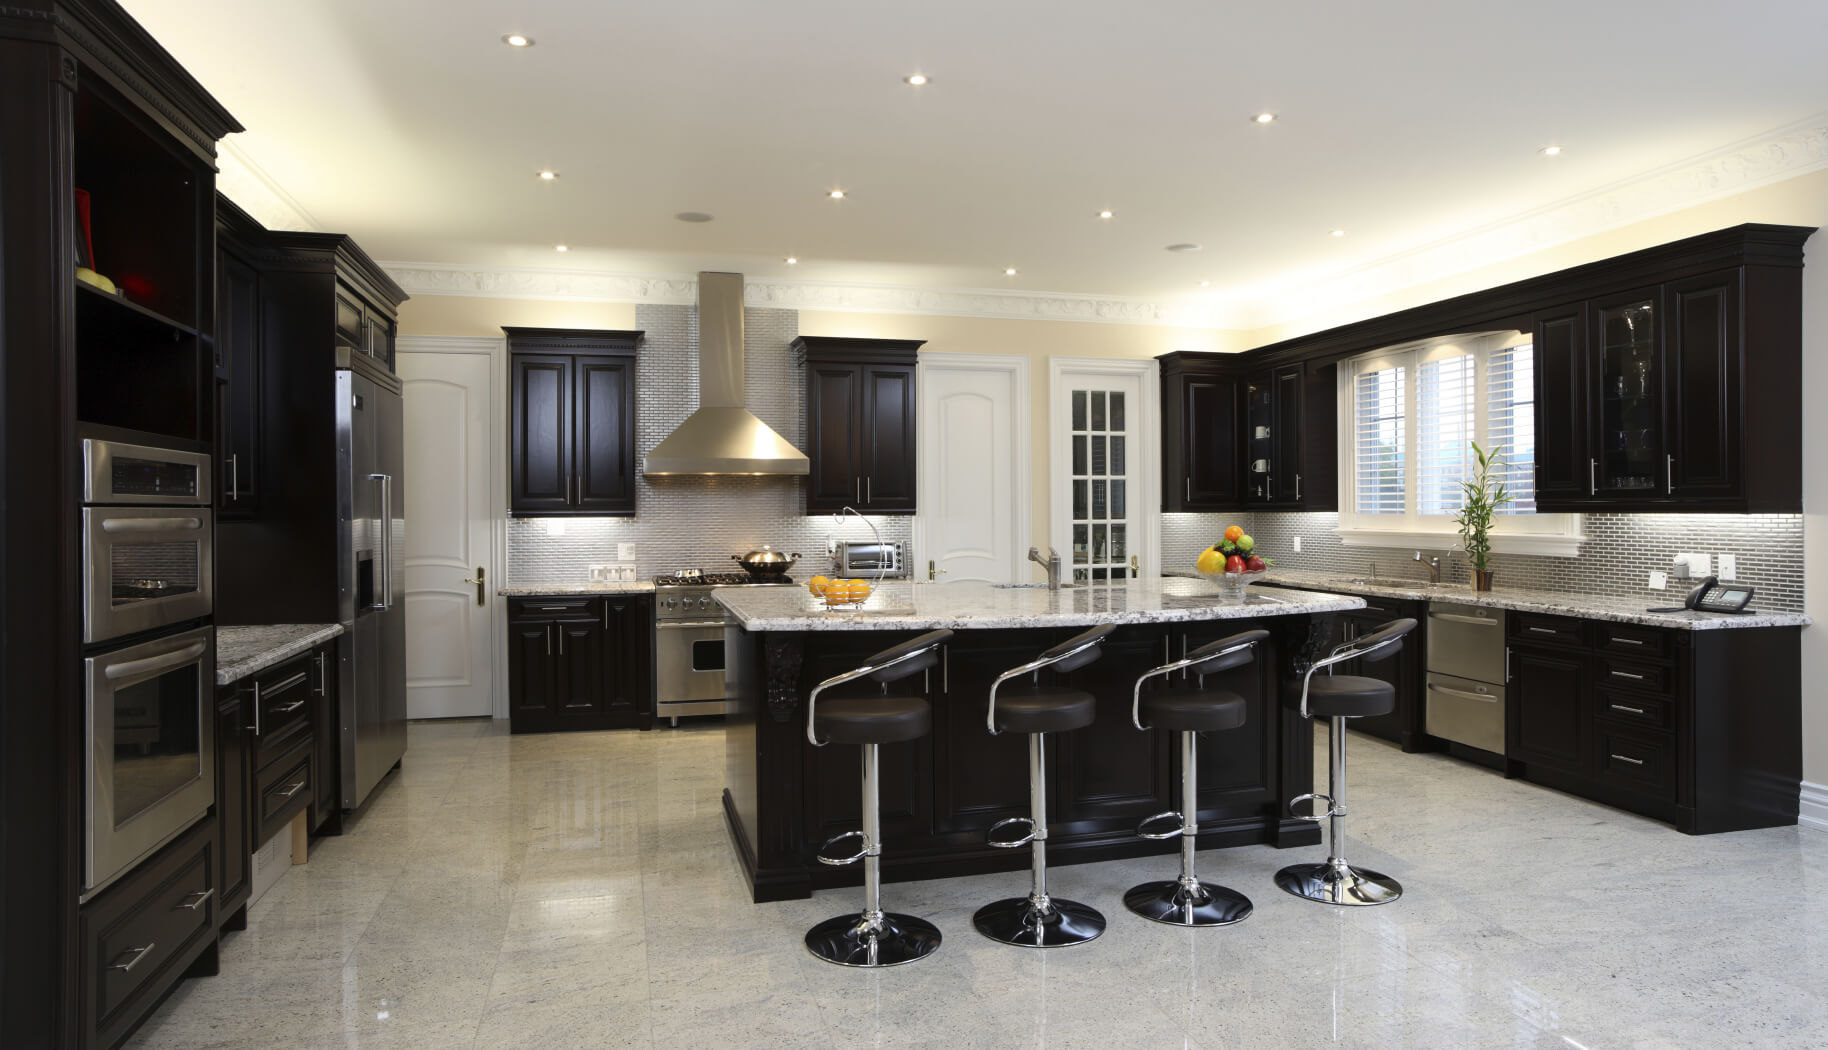 dark kitchen cabinets white kitchen dark floors Spacious modern kitchen with dark cabinetry breakfast bar 4 modern diner style stools and